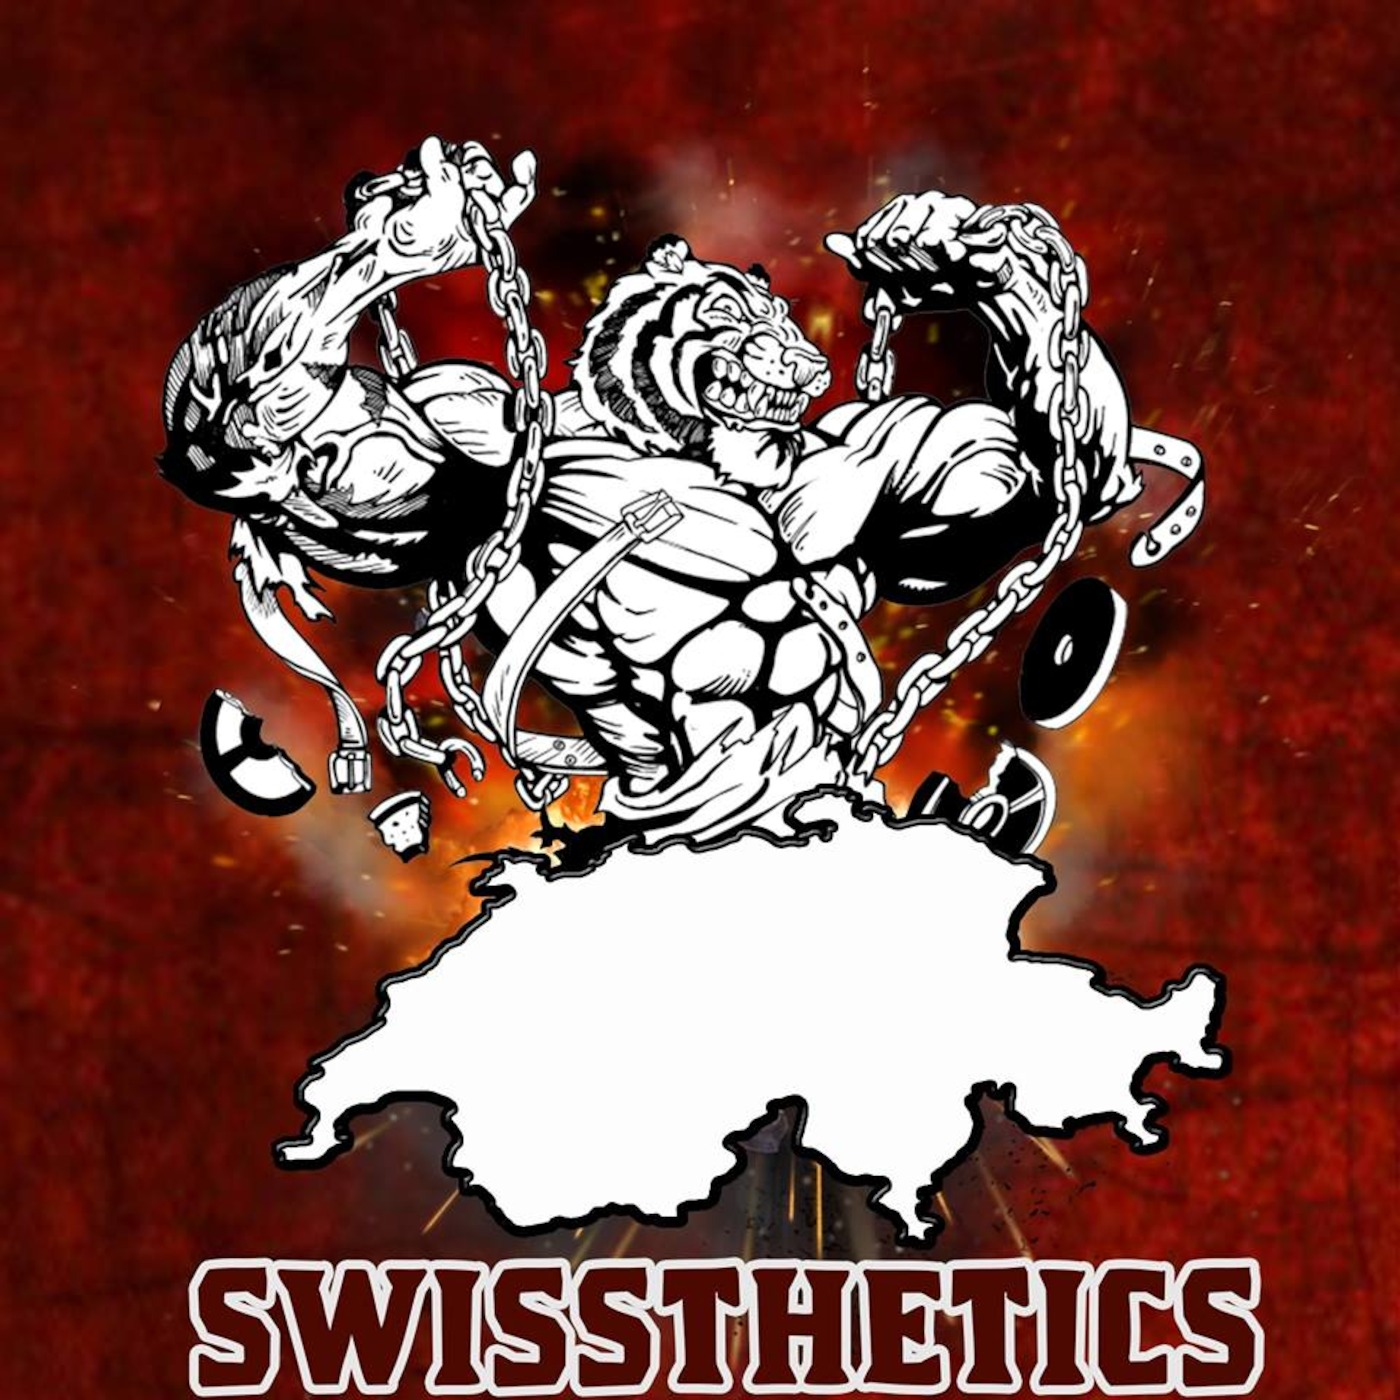 Swissthetics Bodybuilding Fitness Musik (by Bornersthetics)